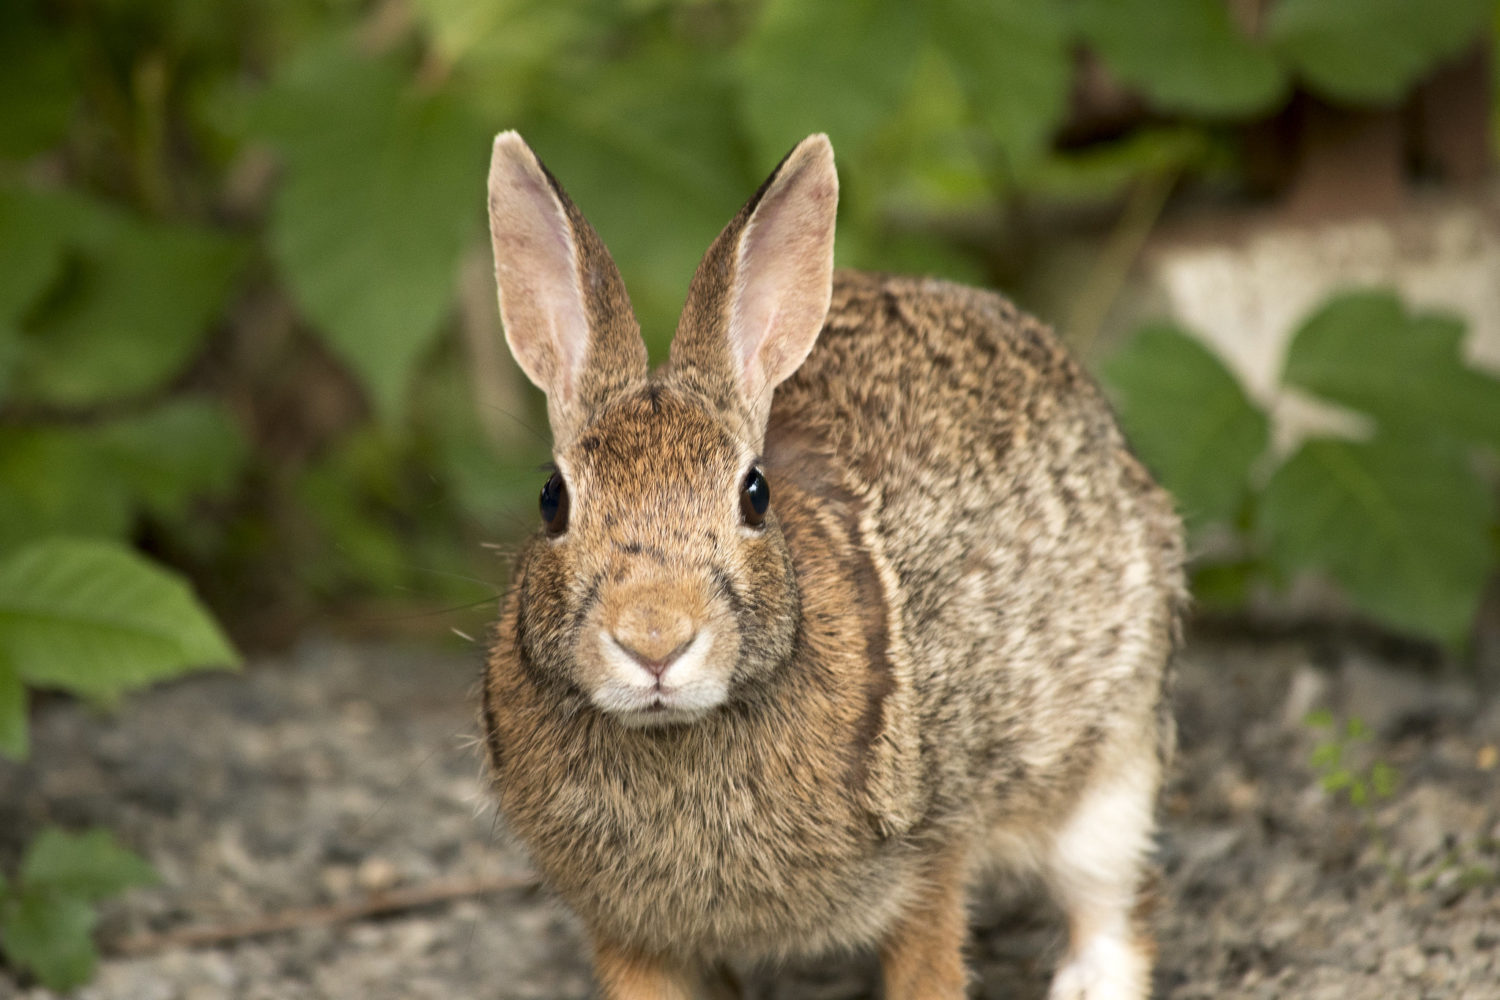 9 Easy Ways to Keep Rabbits Out of Your Garden 1